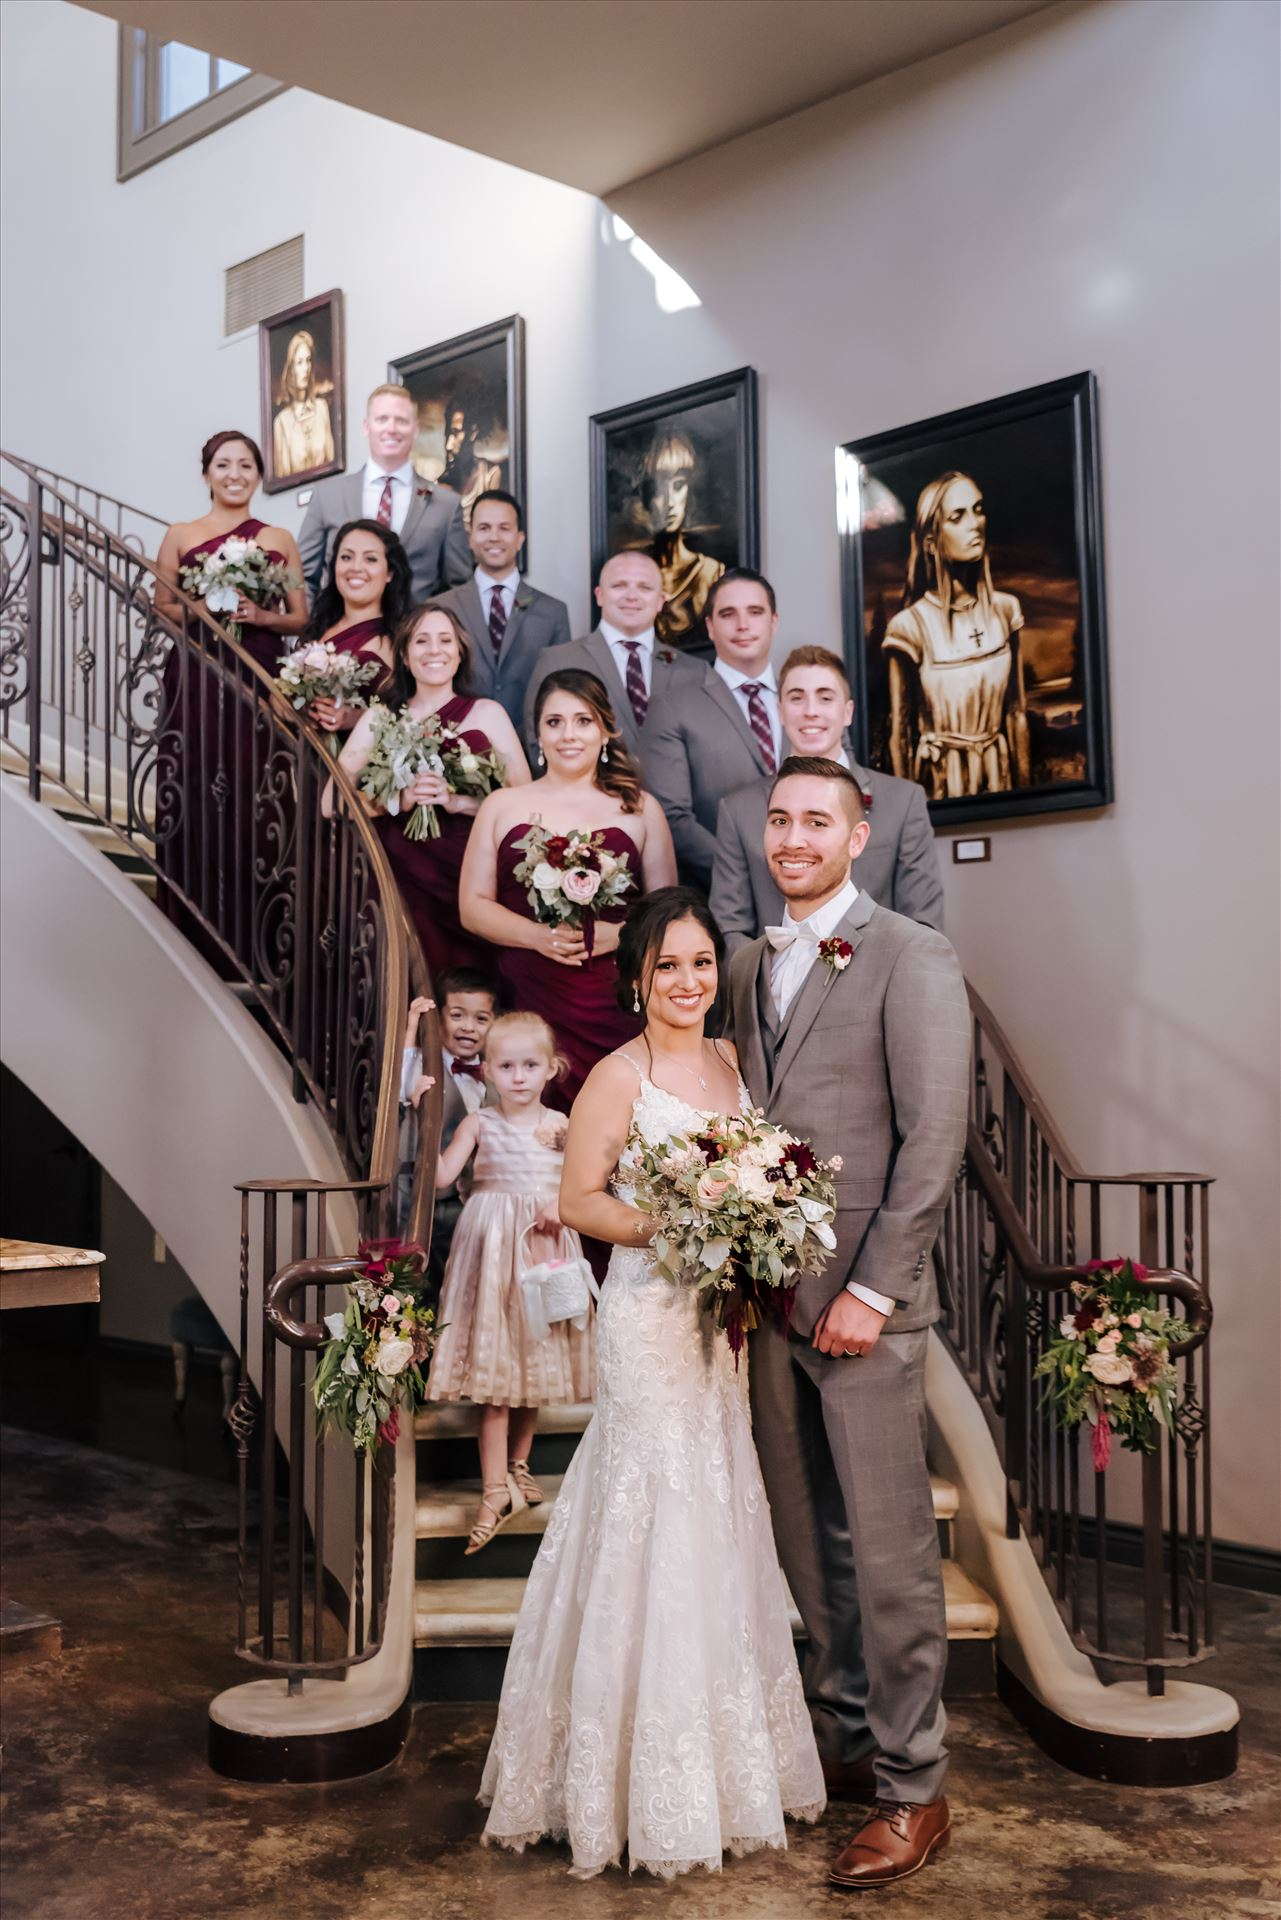 Edith and Kyle 128 - Mirror's Edge Photography captures Edith and Kyle's wedding at the Tooth and Nail Winery in Paso Robles California. Bride, Groom and Bridal Party on Tasting Room staircase by Sarah Williams